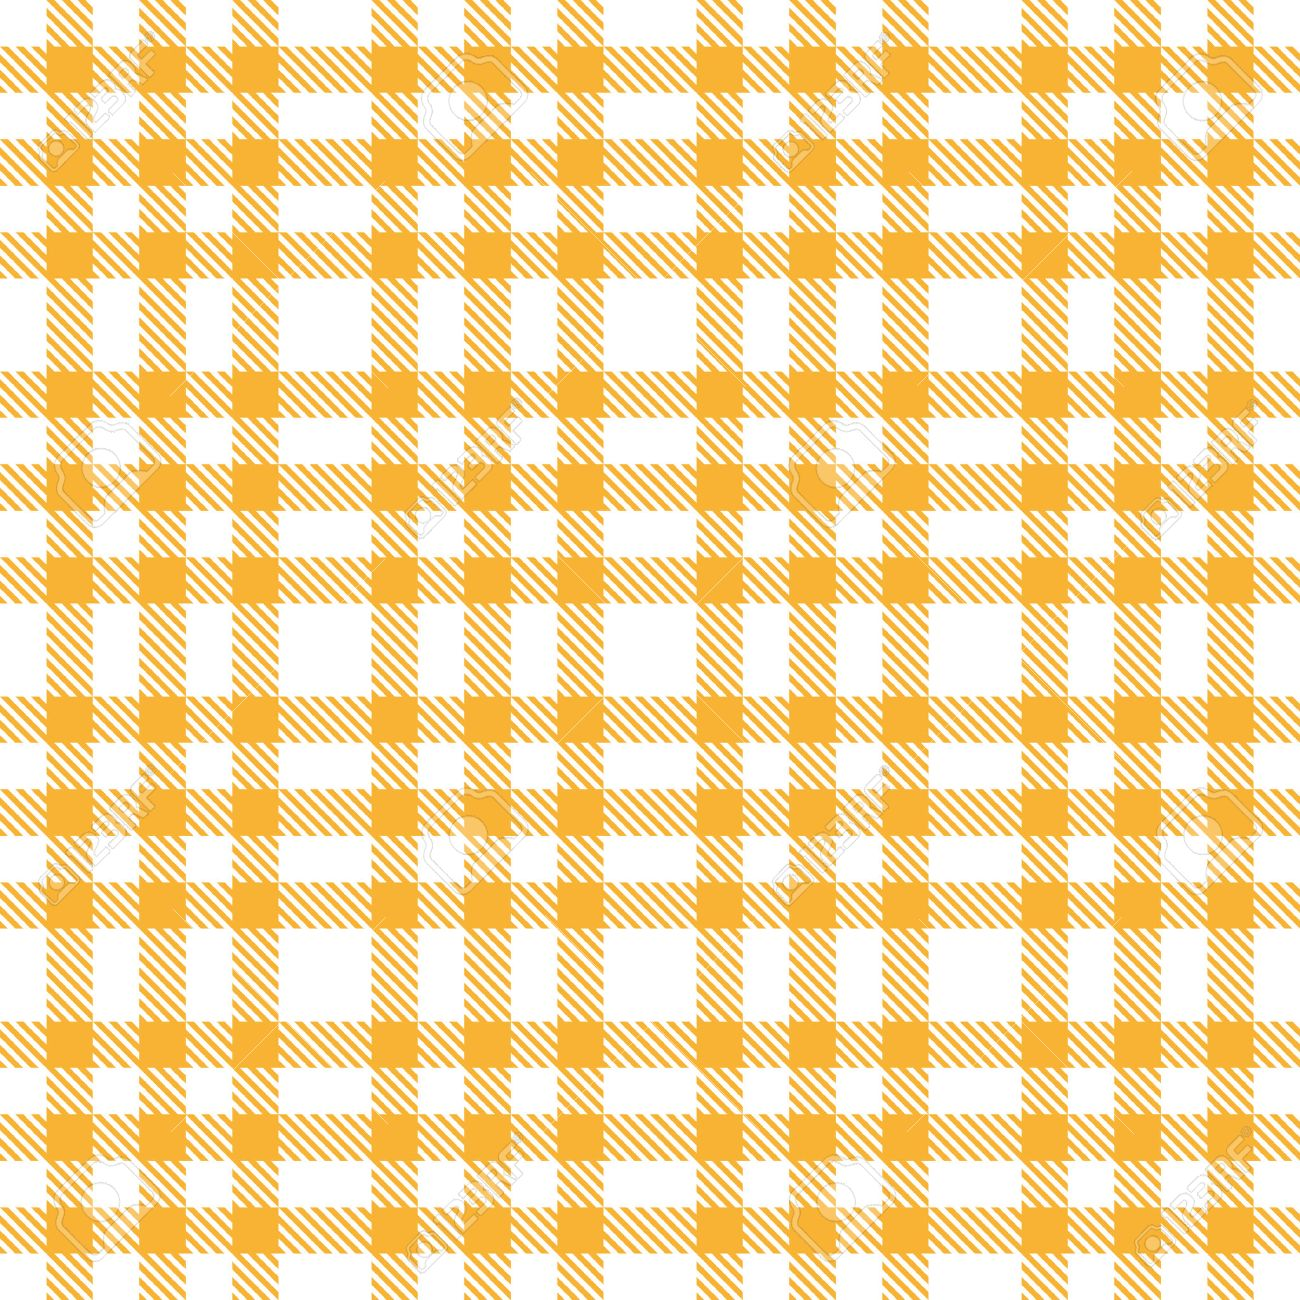 Checkered Table Cloth Background Yellow Stock Vector   30140065